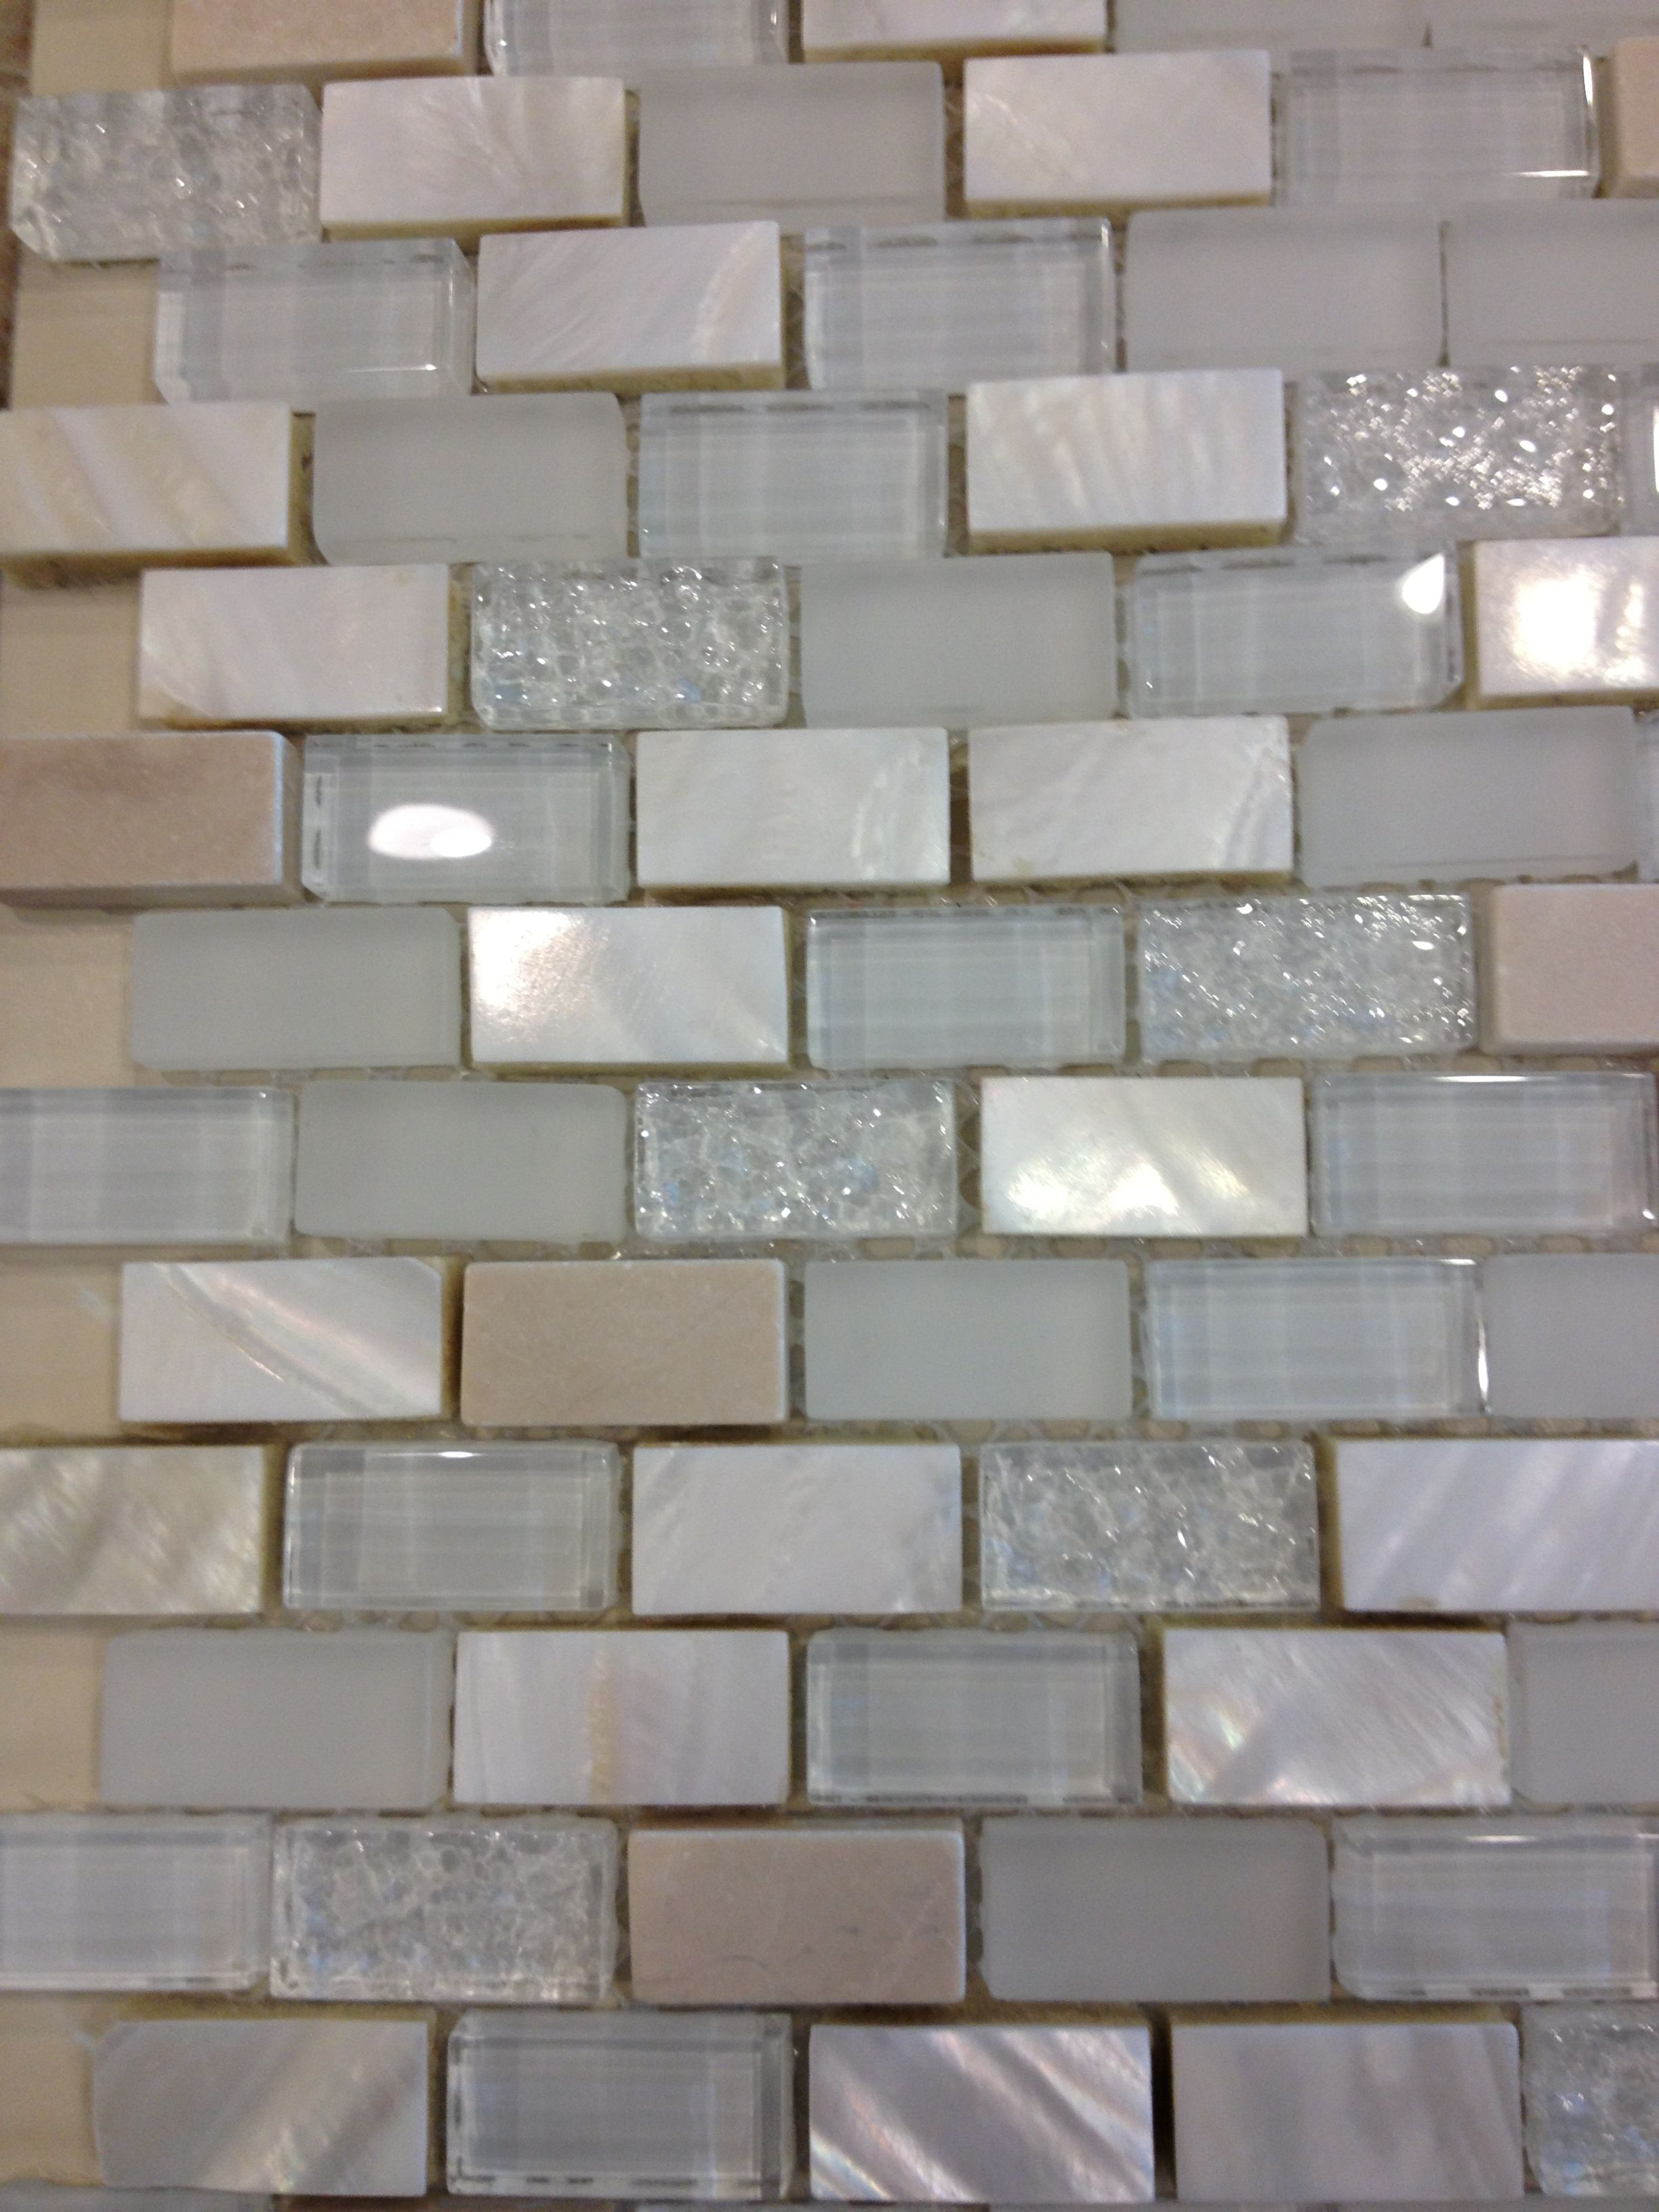 Tumbled travertine mother of pearl and glass tile looks better tumbled travertine mother of pearl and glass tile maybe for backsplash in kitchen dailygadgetfo Images